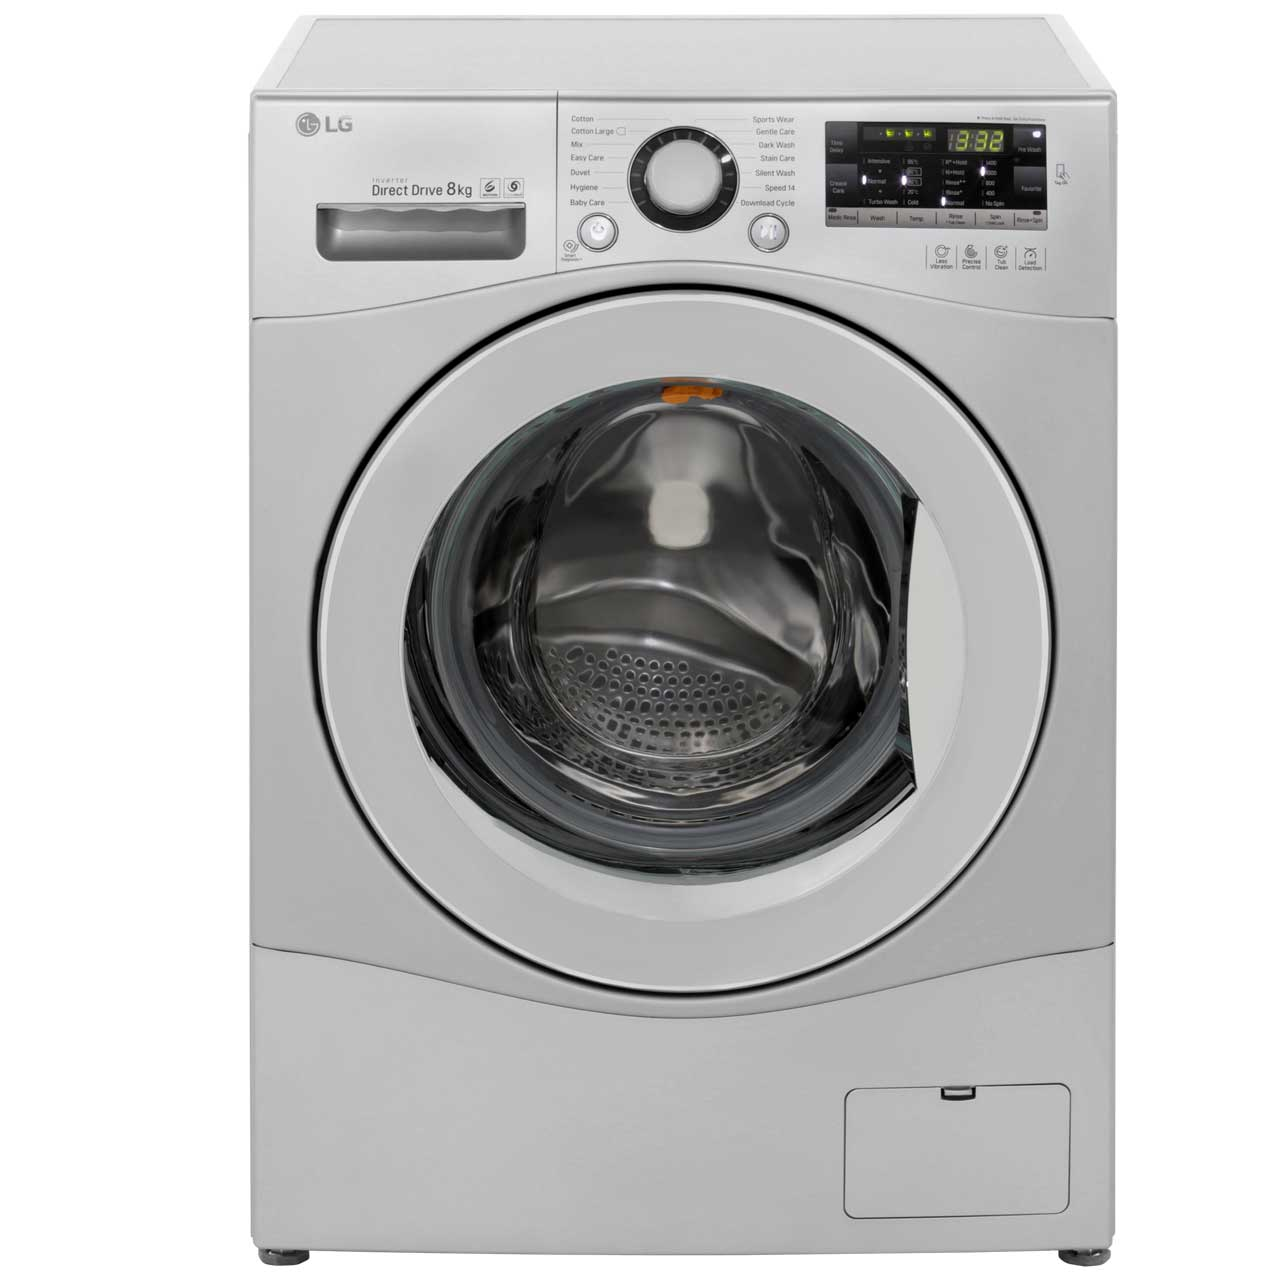 LG FH4A8TDN4 8Kg Washing Machine with 1400 rpm - Silver